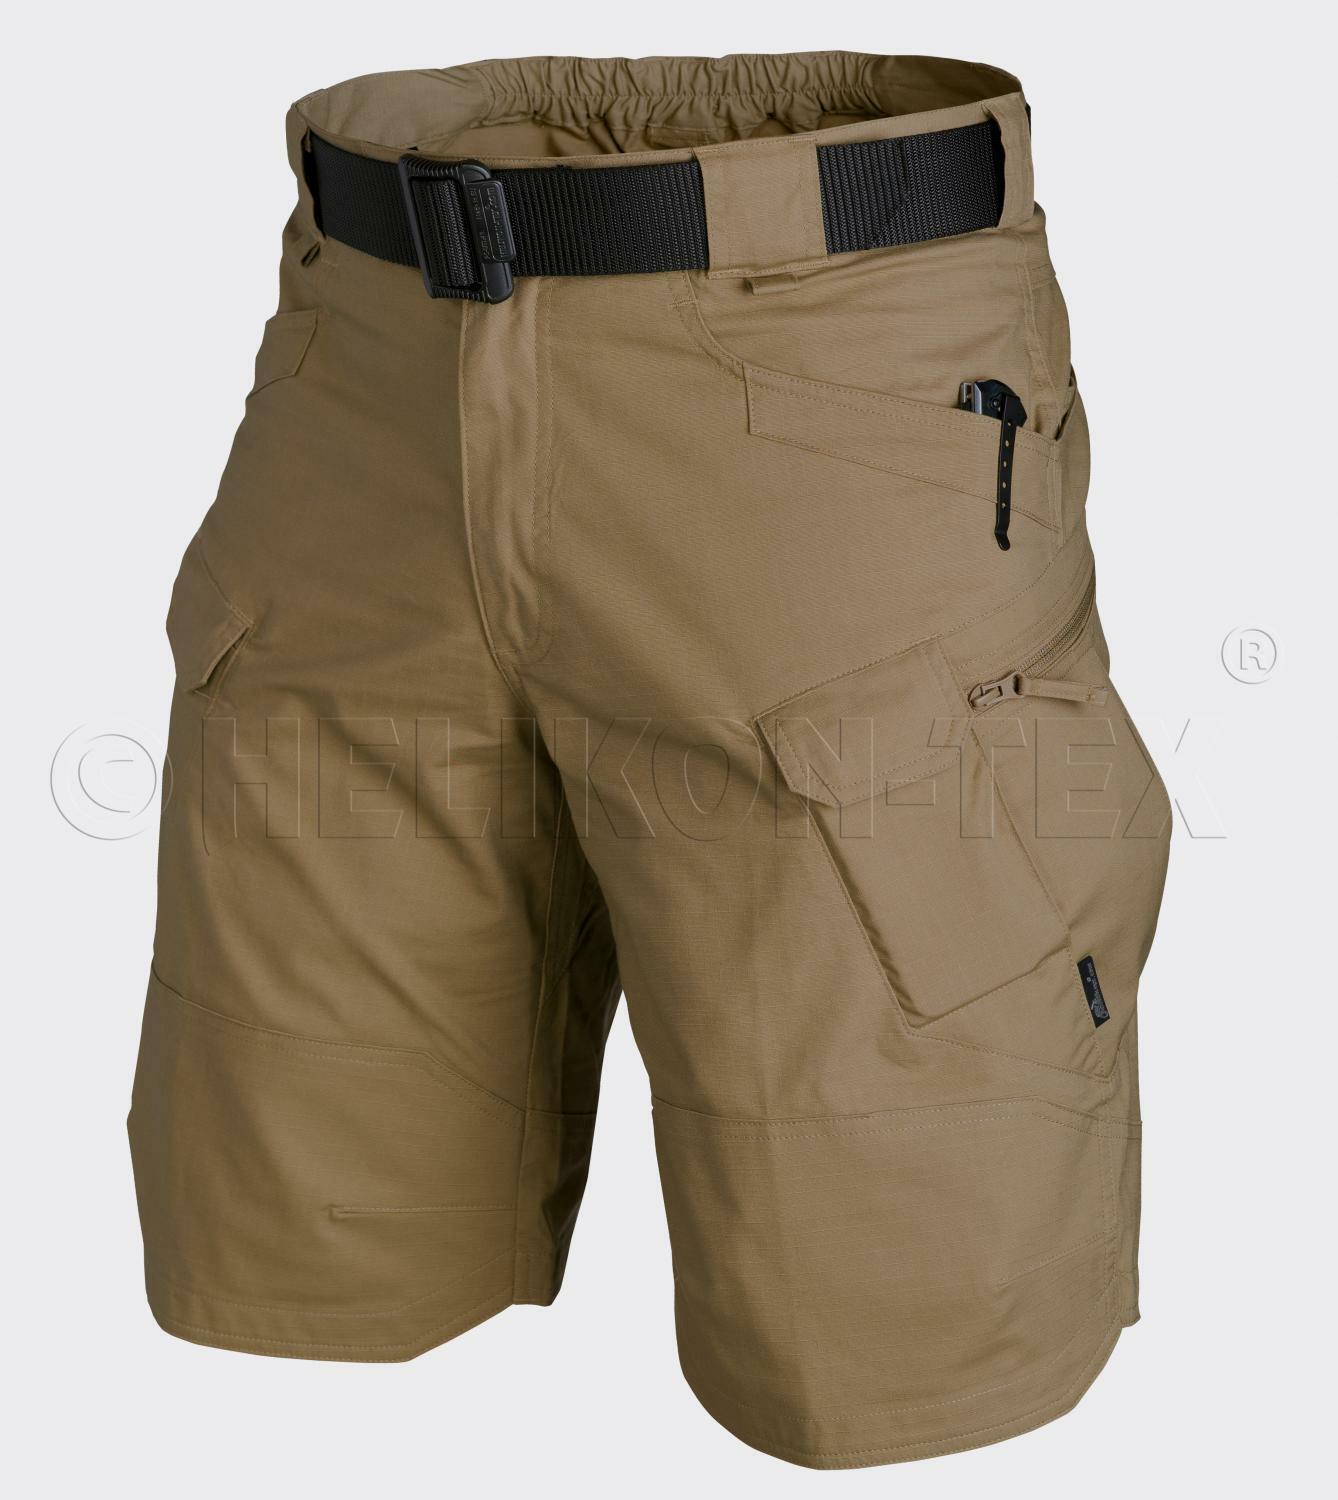 Helikon TEX UTK Urban Tactical Tactical Tactical Cargo Shorts Pantaloni Outdoor brevemente Coyote L/Large a72c33